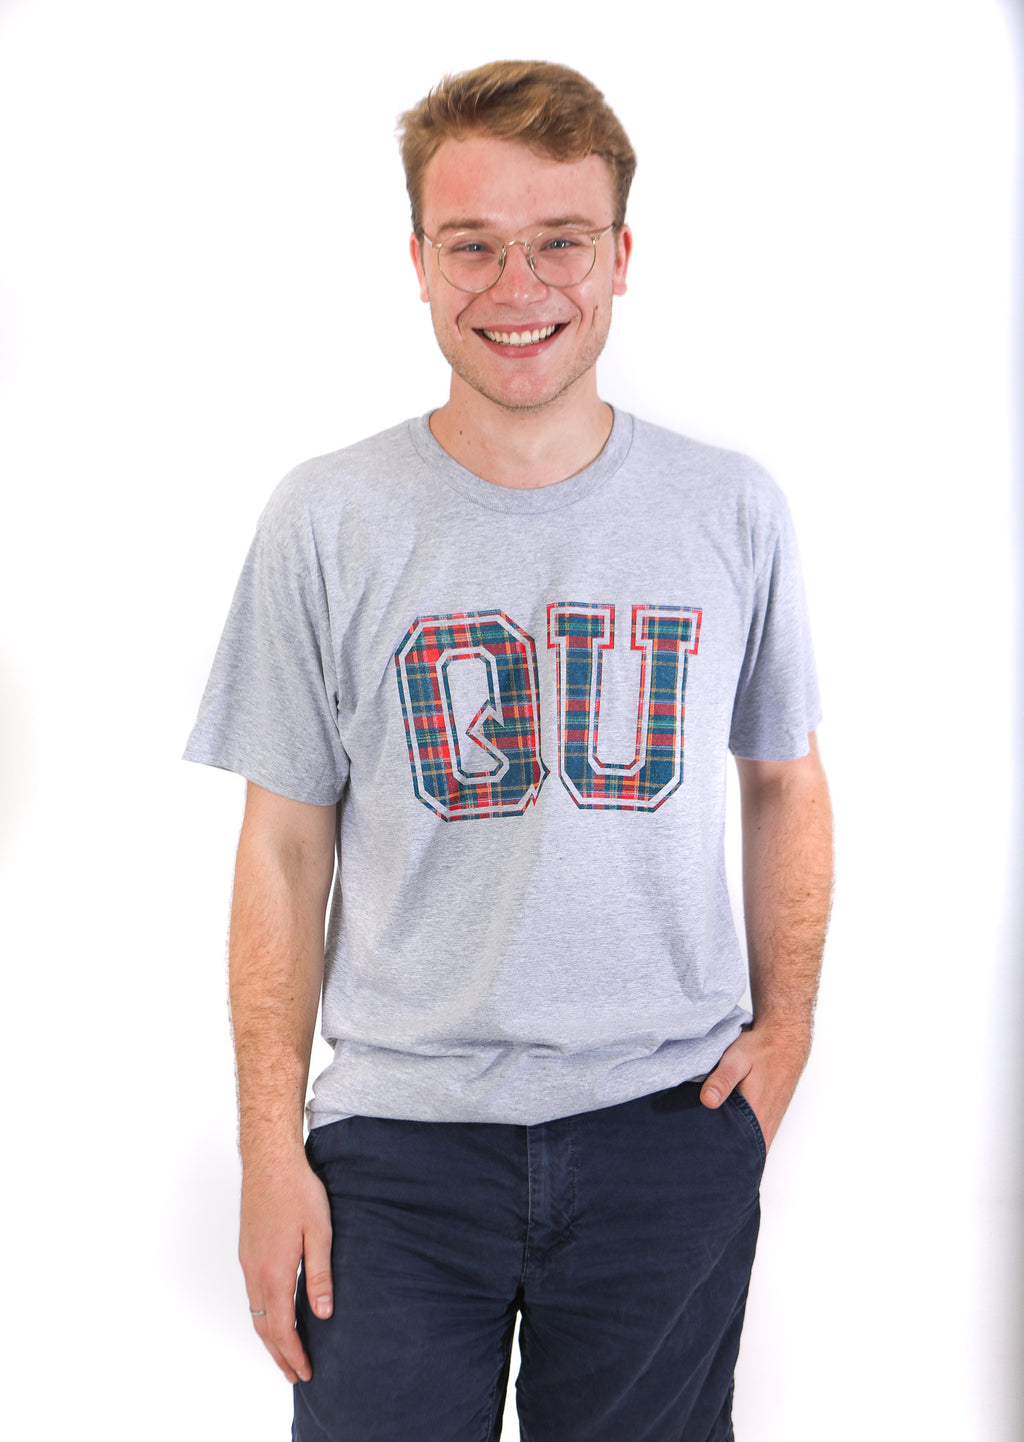 Front view of grey tshirt with large QU filled in with blue and red plaid